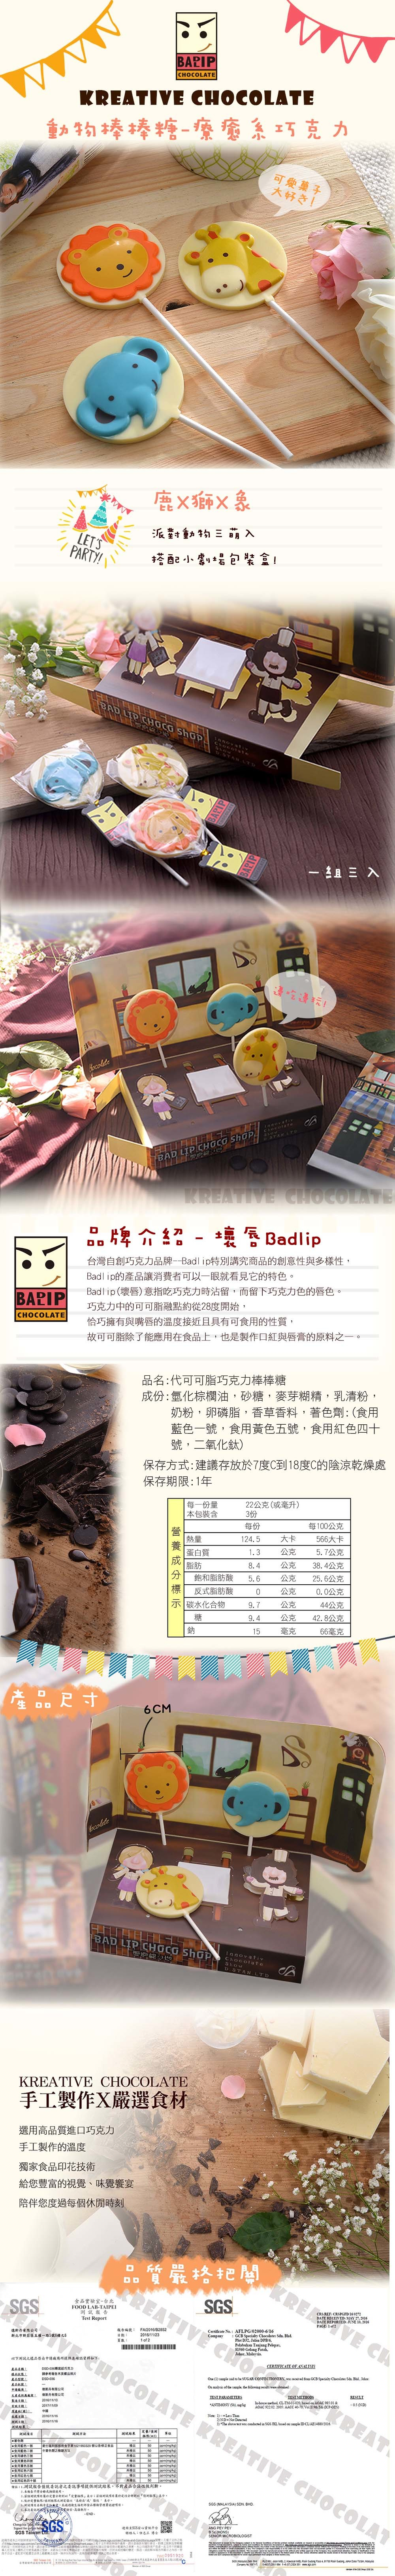 療癒系動物造型巧克力棒棒糖-獅子/大象/長頸鹿 (3入+盒/組)|Kreative Chocolate創意巧克力